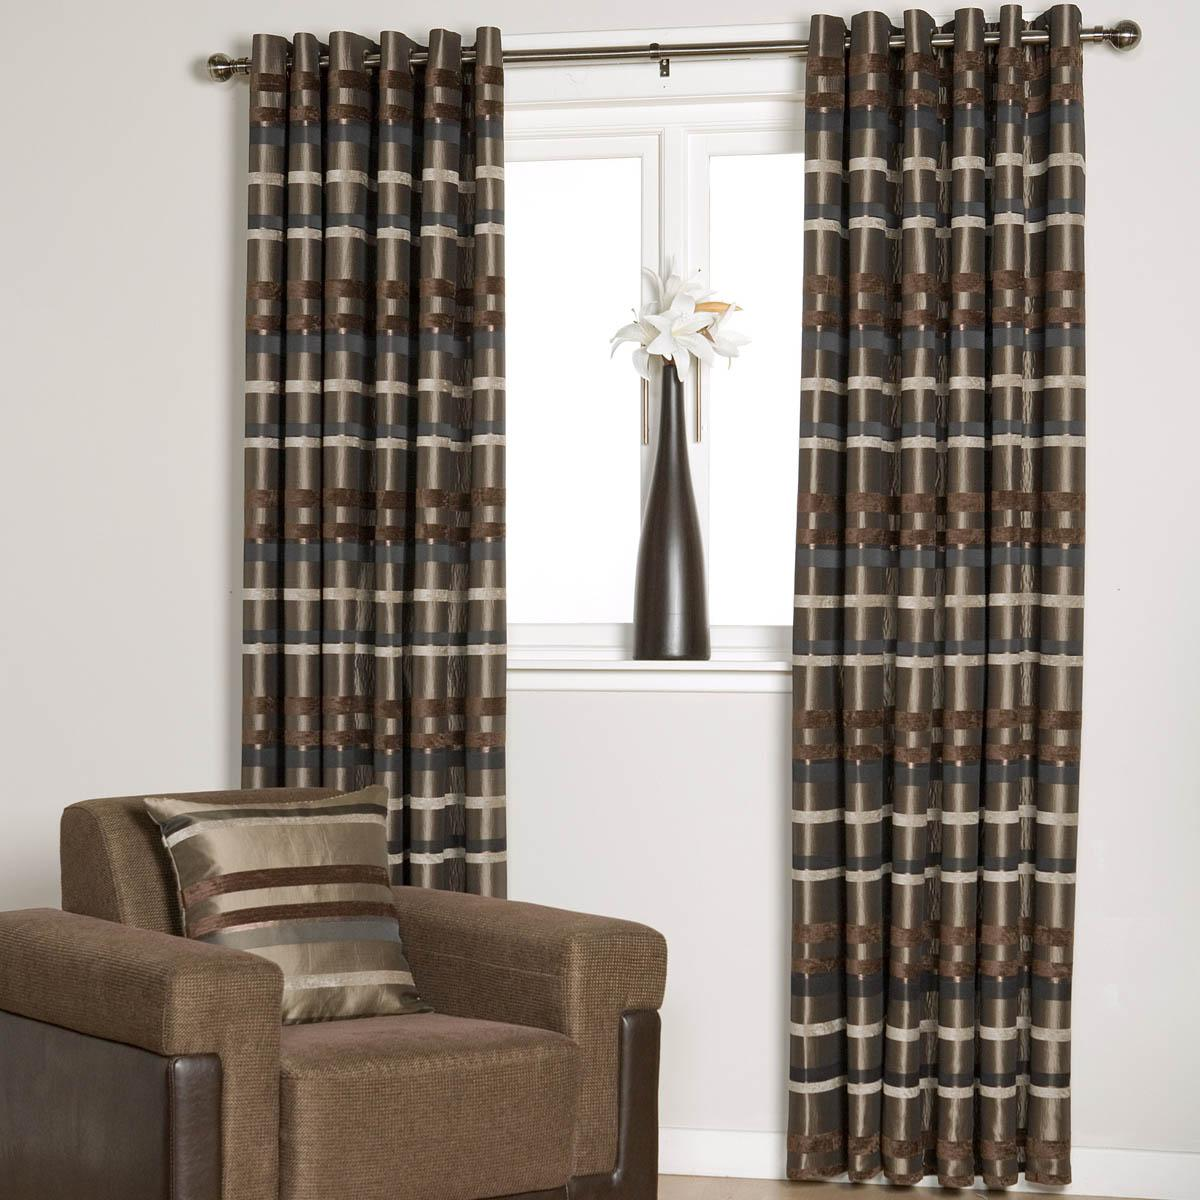 Curtain Ready Made Shop For Cheap Curtains Amp Blinds And